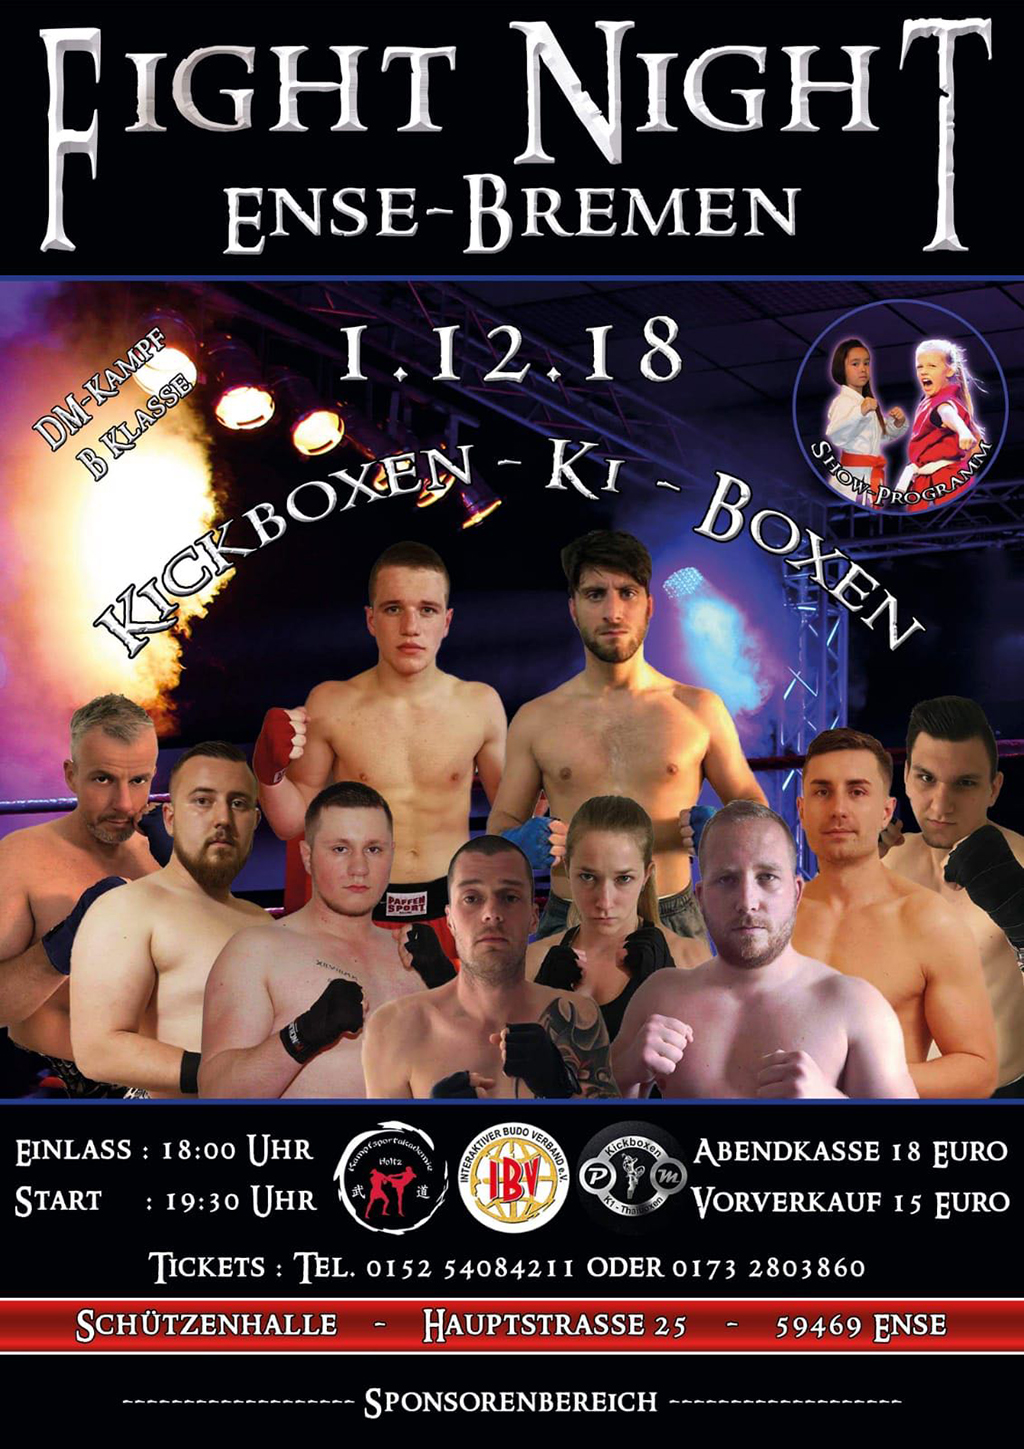 Fight-Night-Ense-Bremen-1-12-2018 (1)